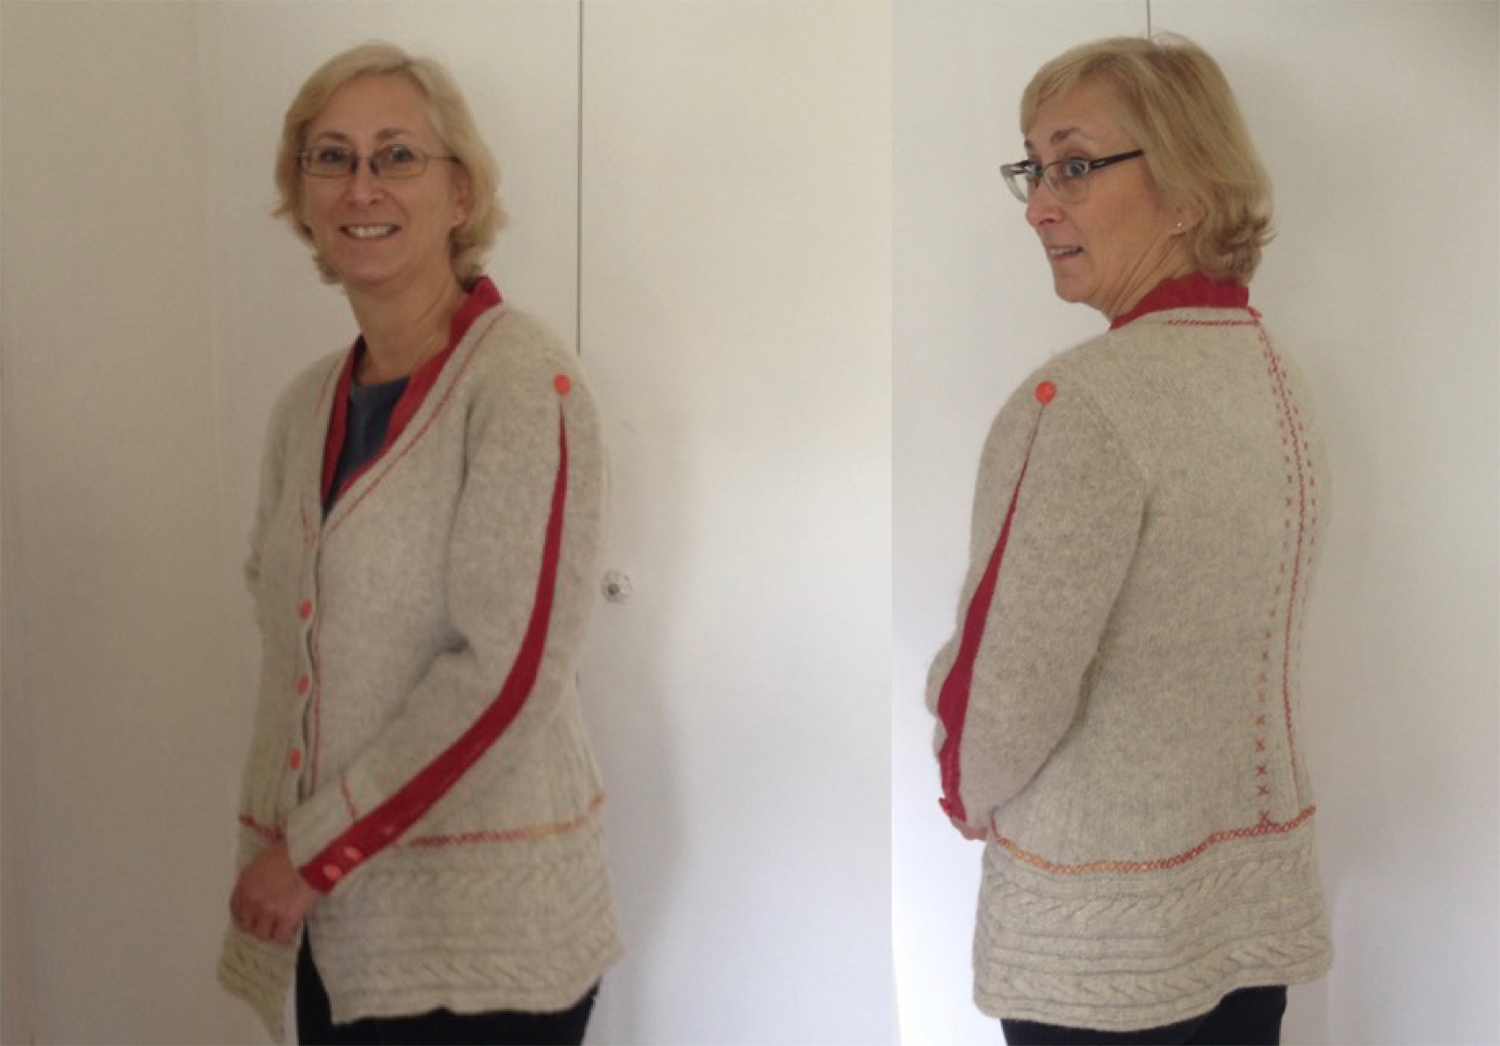 Tamara Russell made a signature wool cardigan from rescued materials for The Slow Clothing Project.